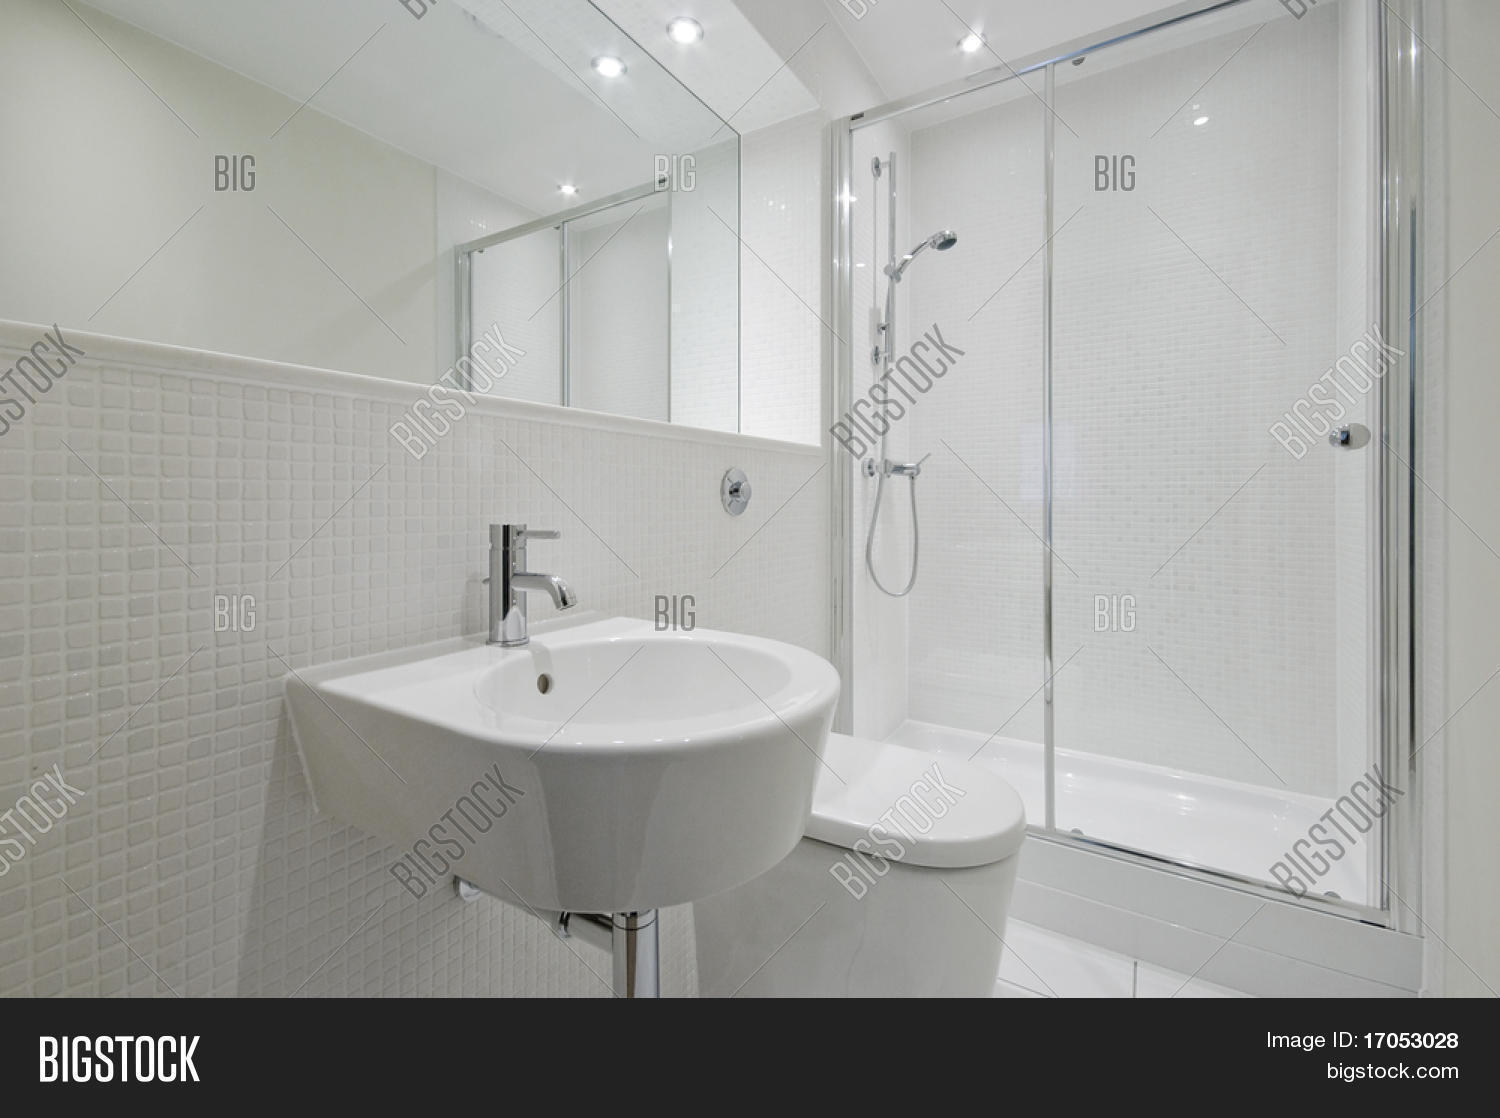 Modern White Mosaic Tile Bathroom Frieze - Bathroom with Bathtub ...